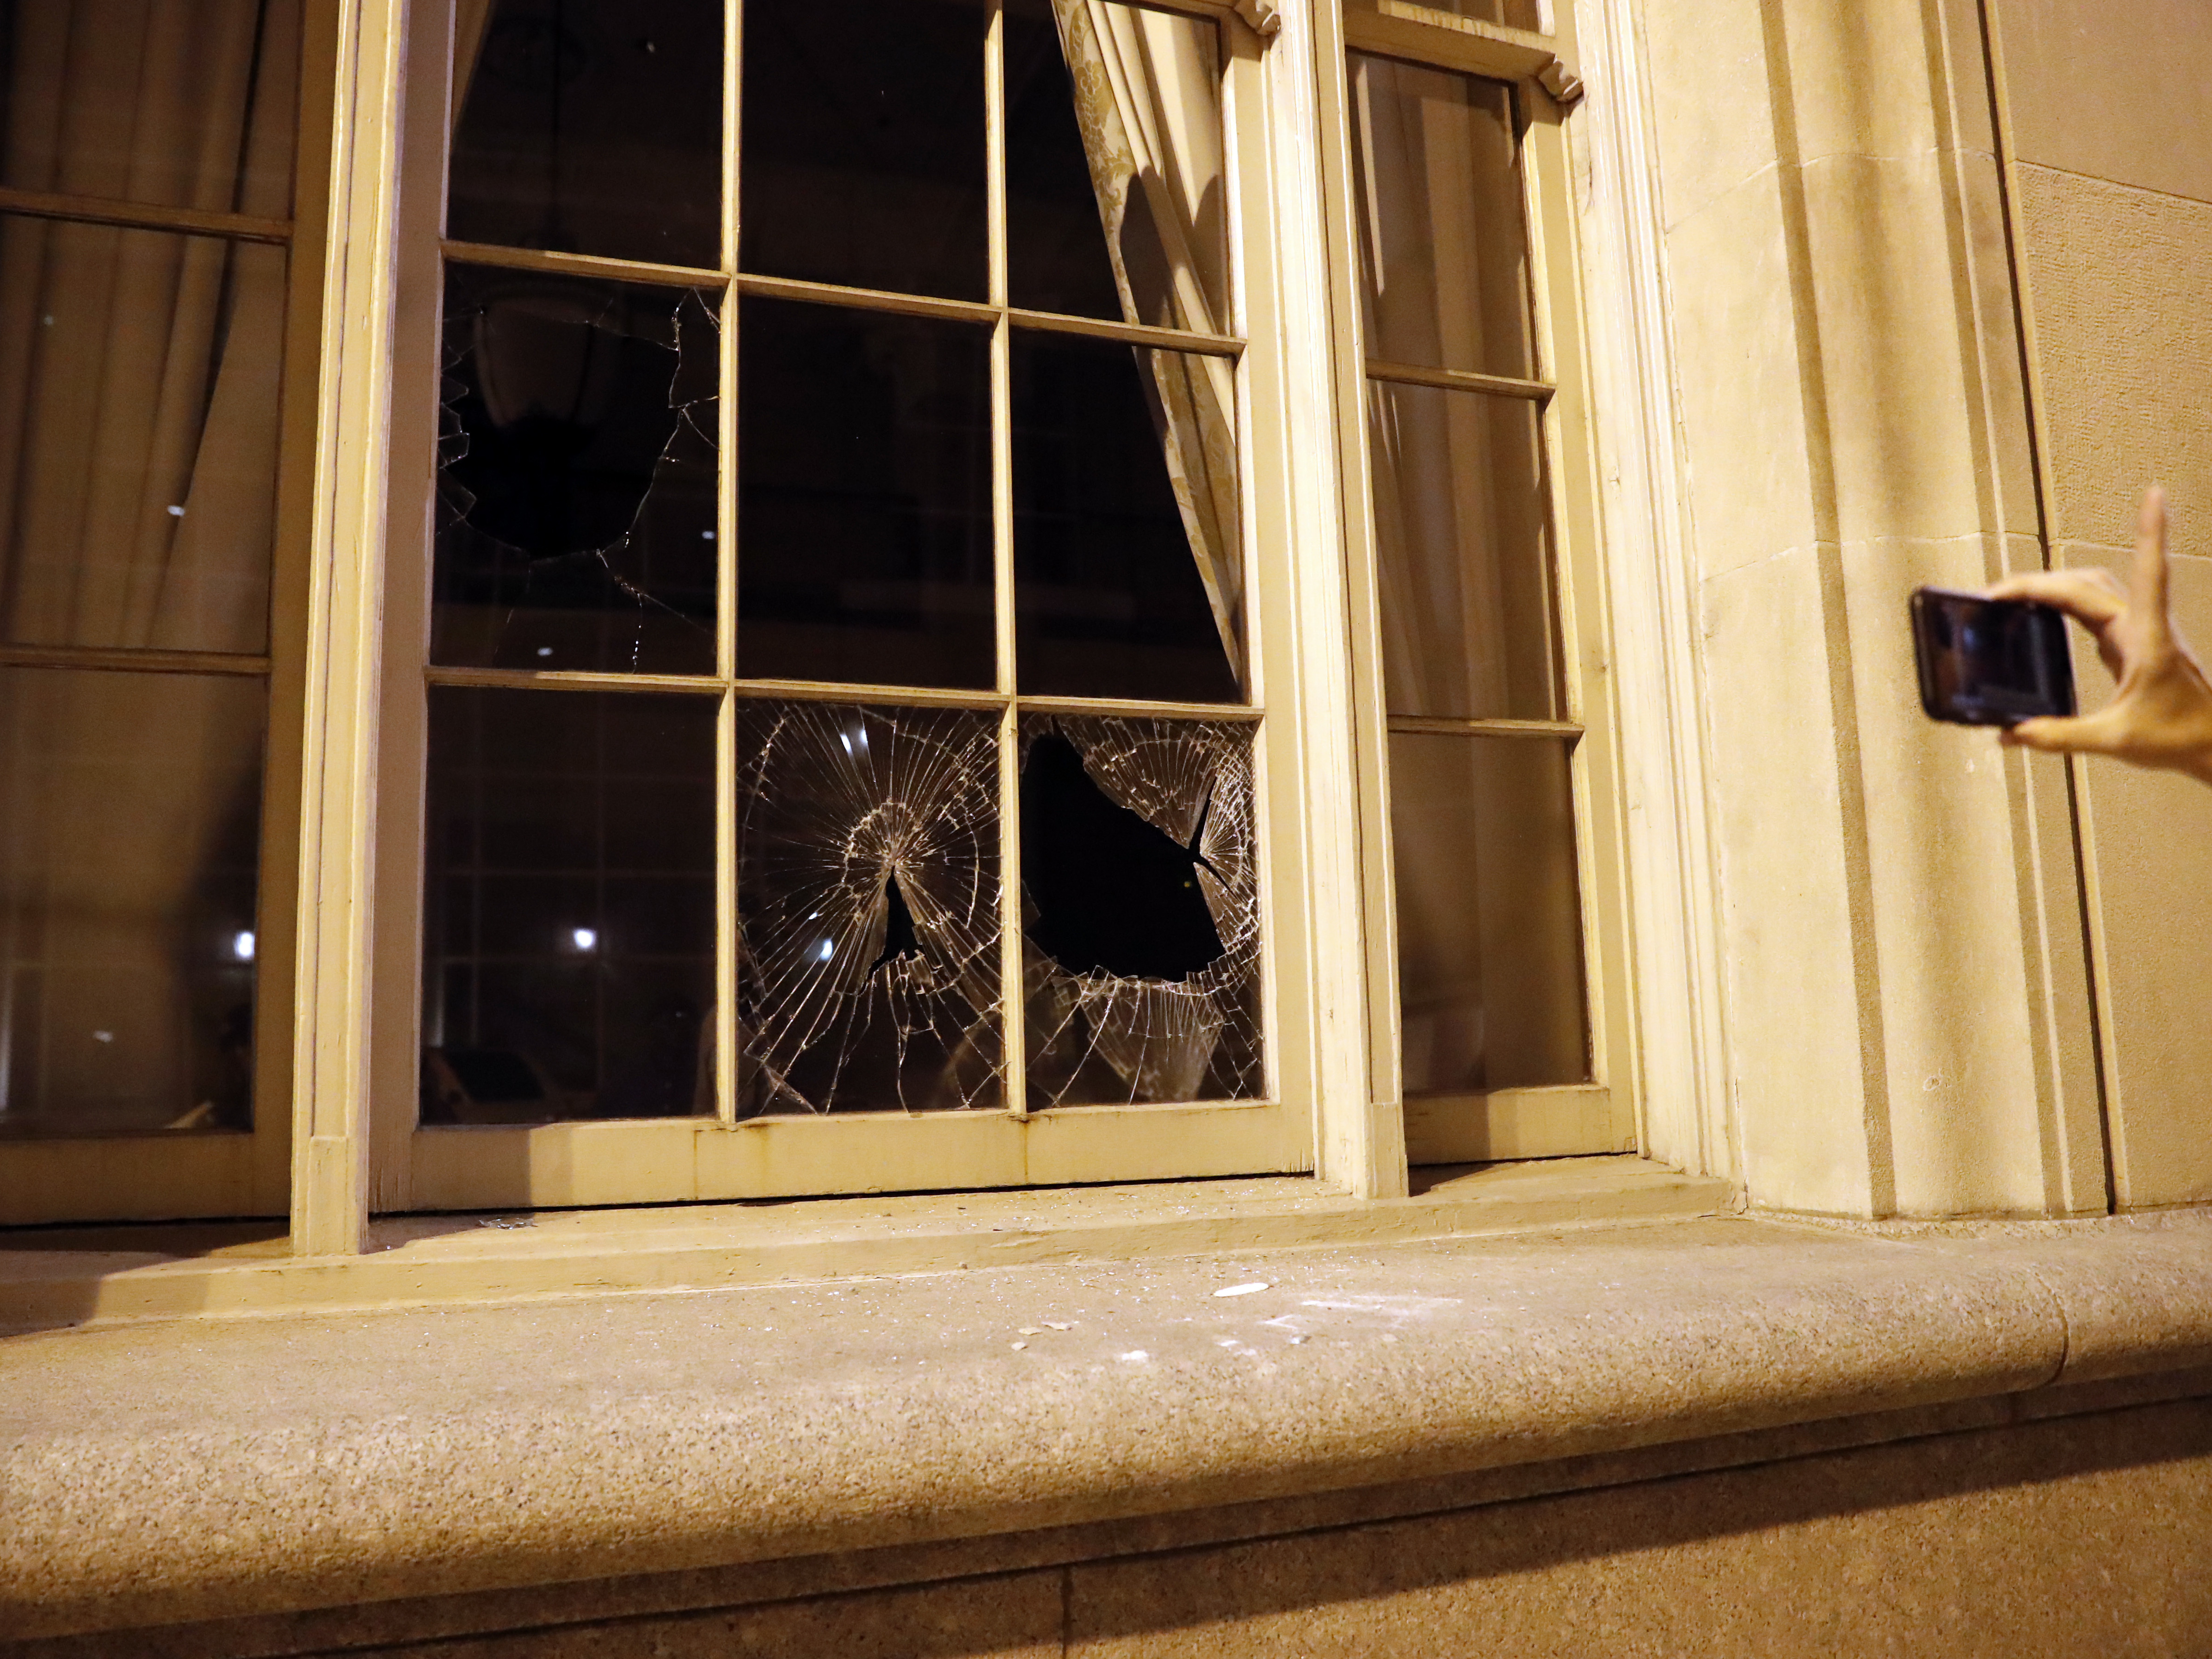 A person takes a photo of a broken window after protests Sunday in St. Louis. (Jeff Roberson/AP)